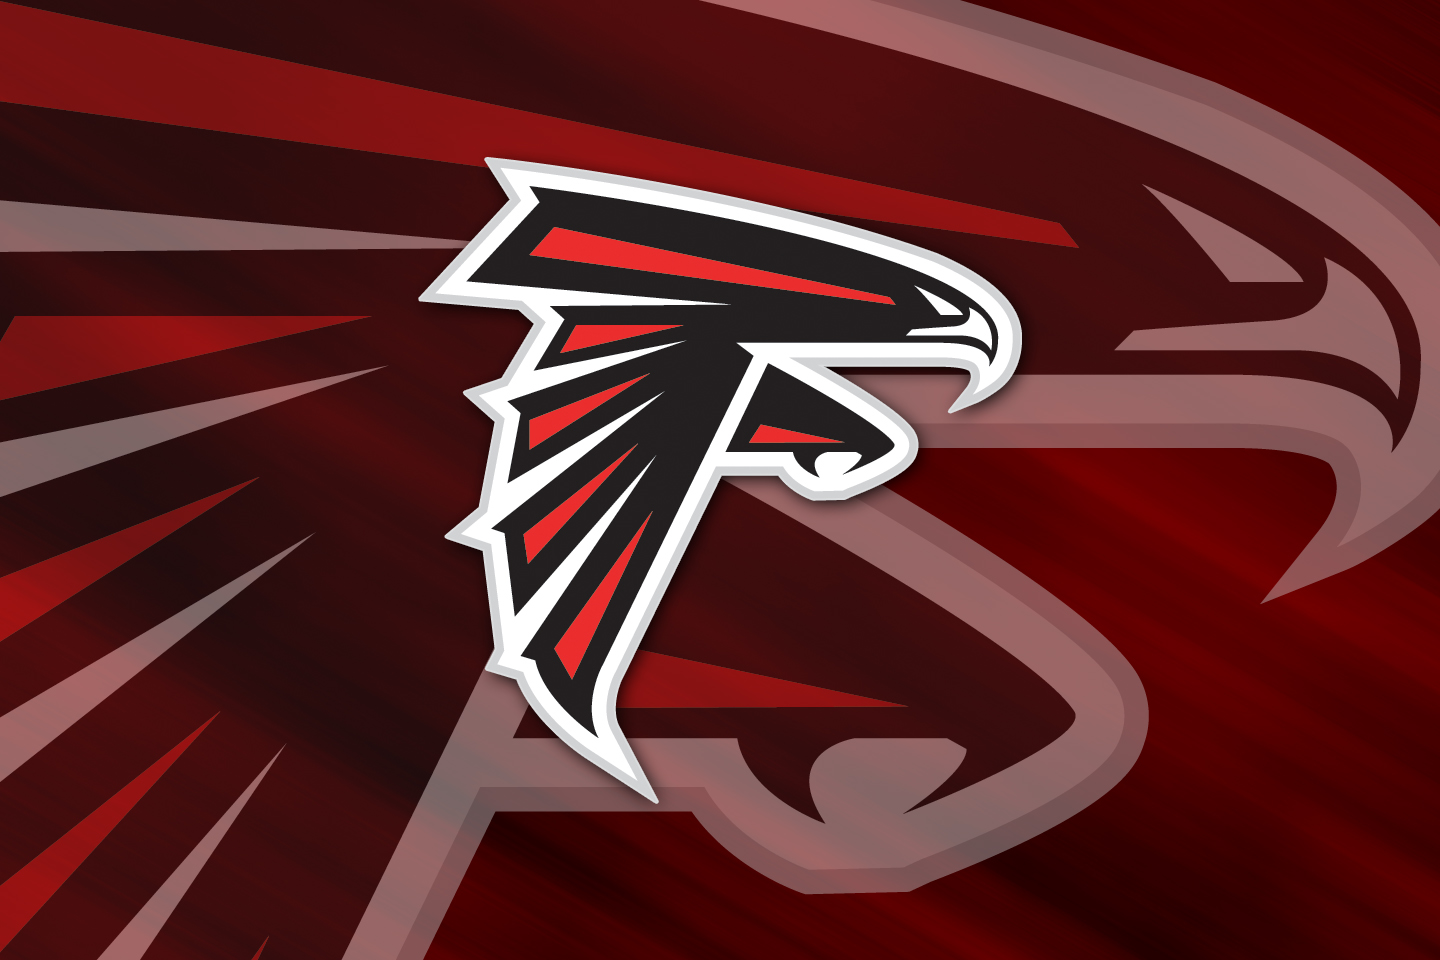 Atlanta Falcons Wallpapers Hd: Falcons HD Wallpaper